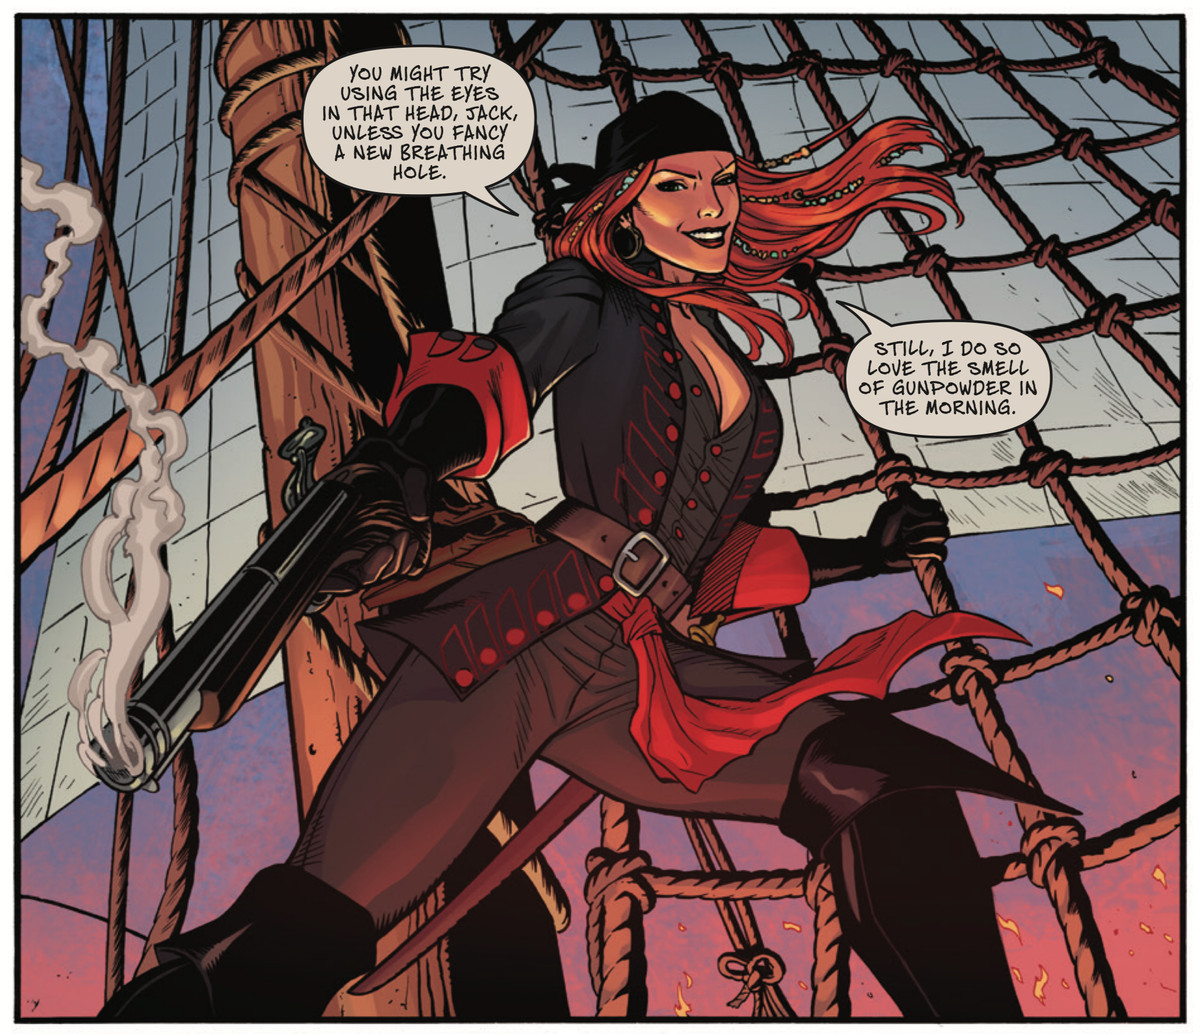 """Hair blowing in the ocean breeze, pirate extraordinaire Anne Bonny lowers a smoking pistol, saying """"I do so love the smell of gunpowder in the morning,"""" in A Man Among Ye #1, Image Comics (2020)."""